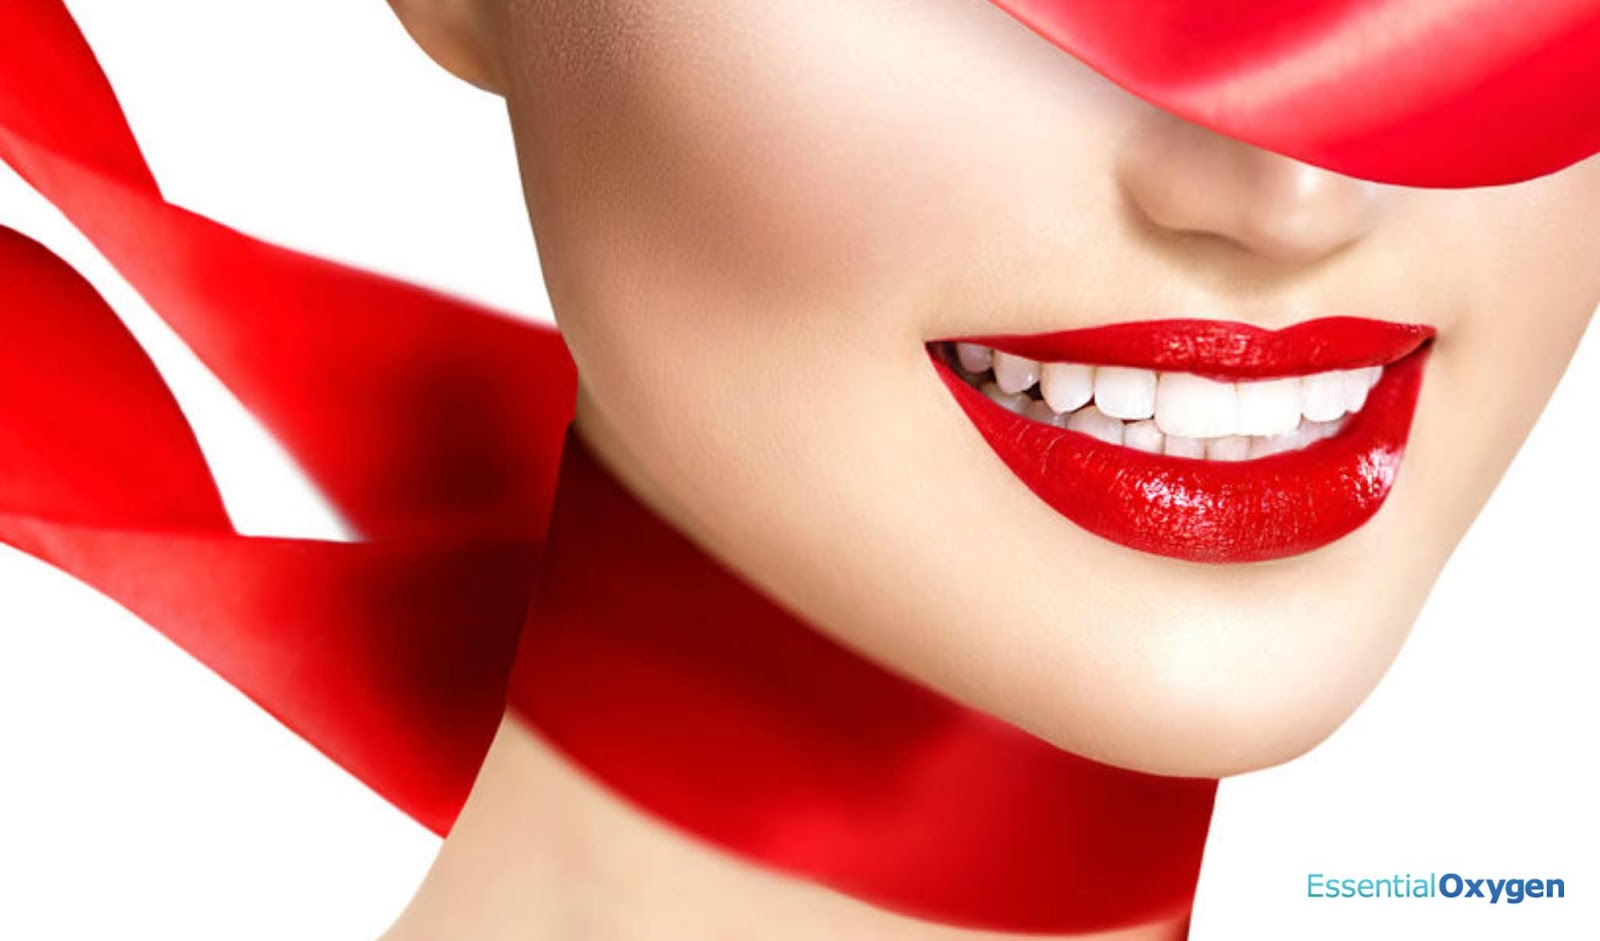 The Natural And Organic Way To Whiten Your Teeth This Holiday Season By Barbies Beauty Bits and essential oxygen